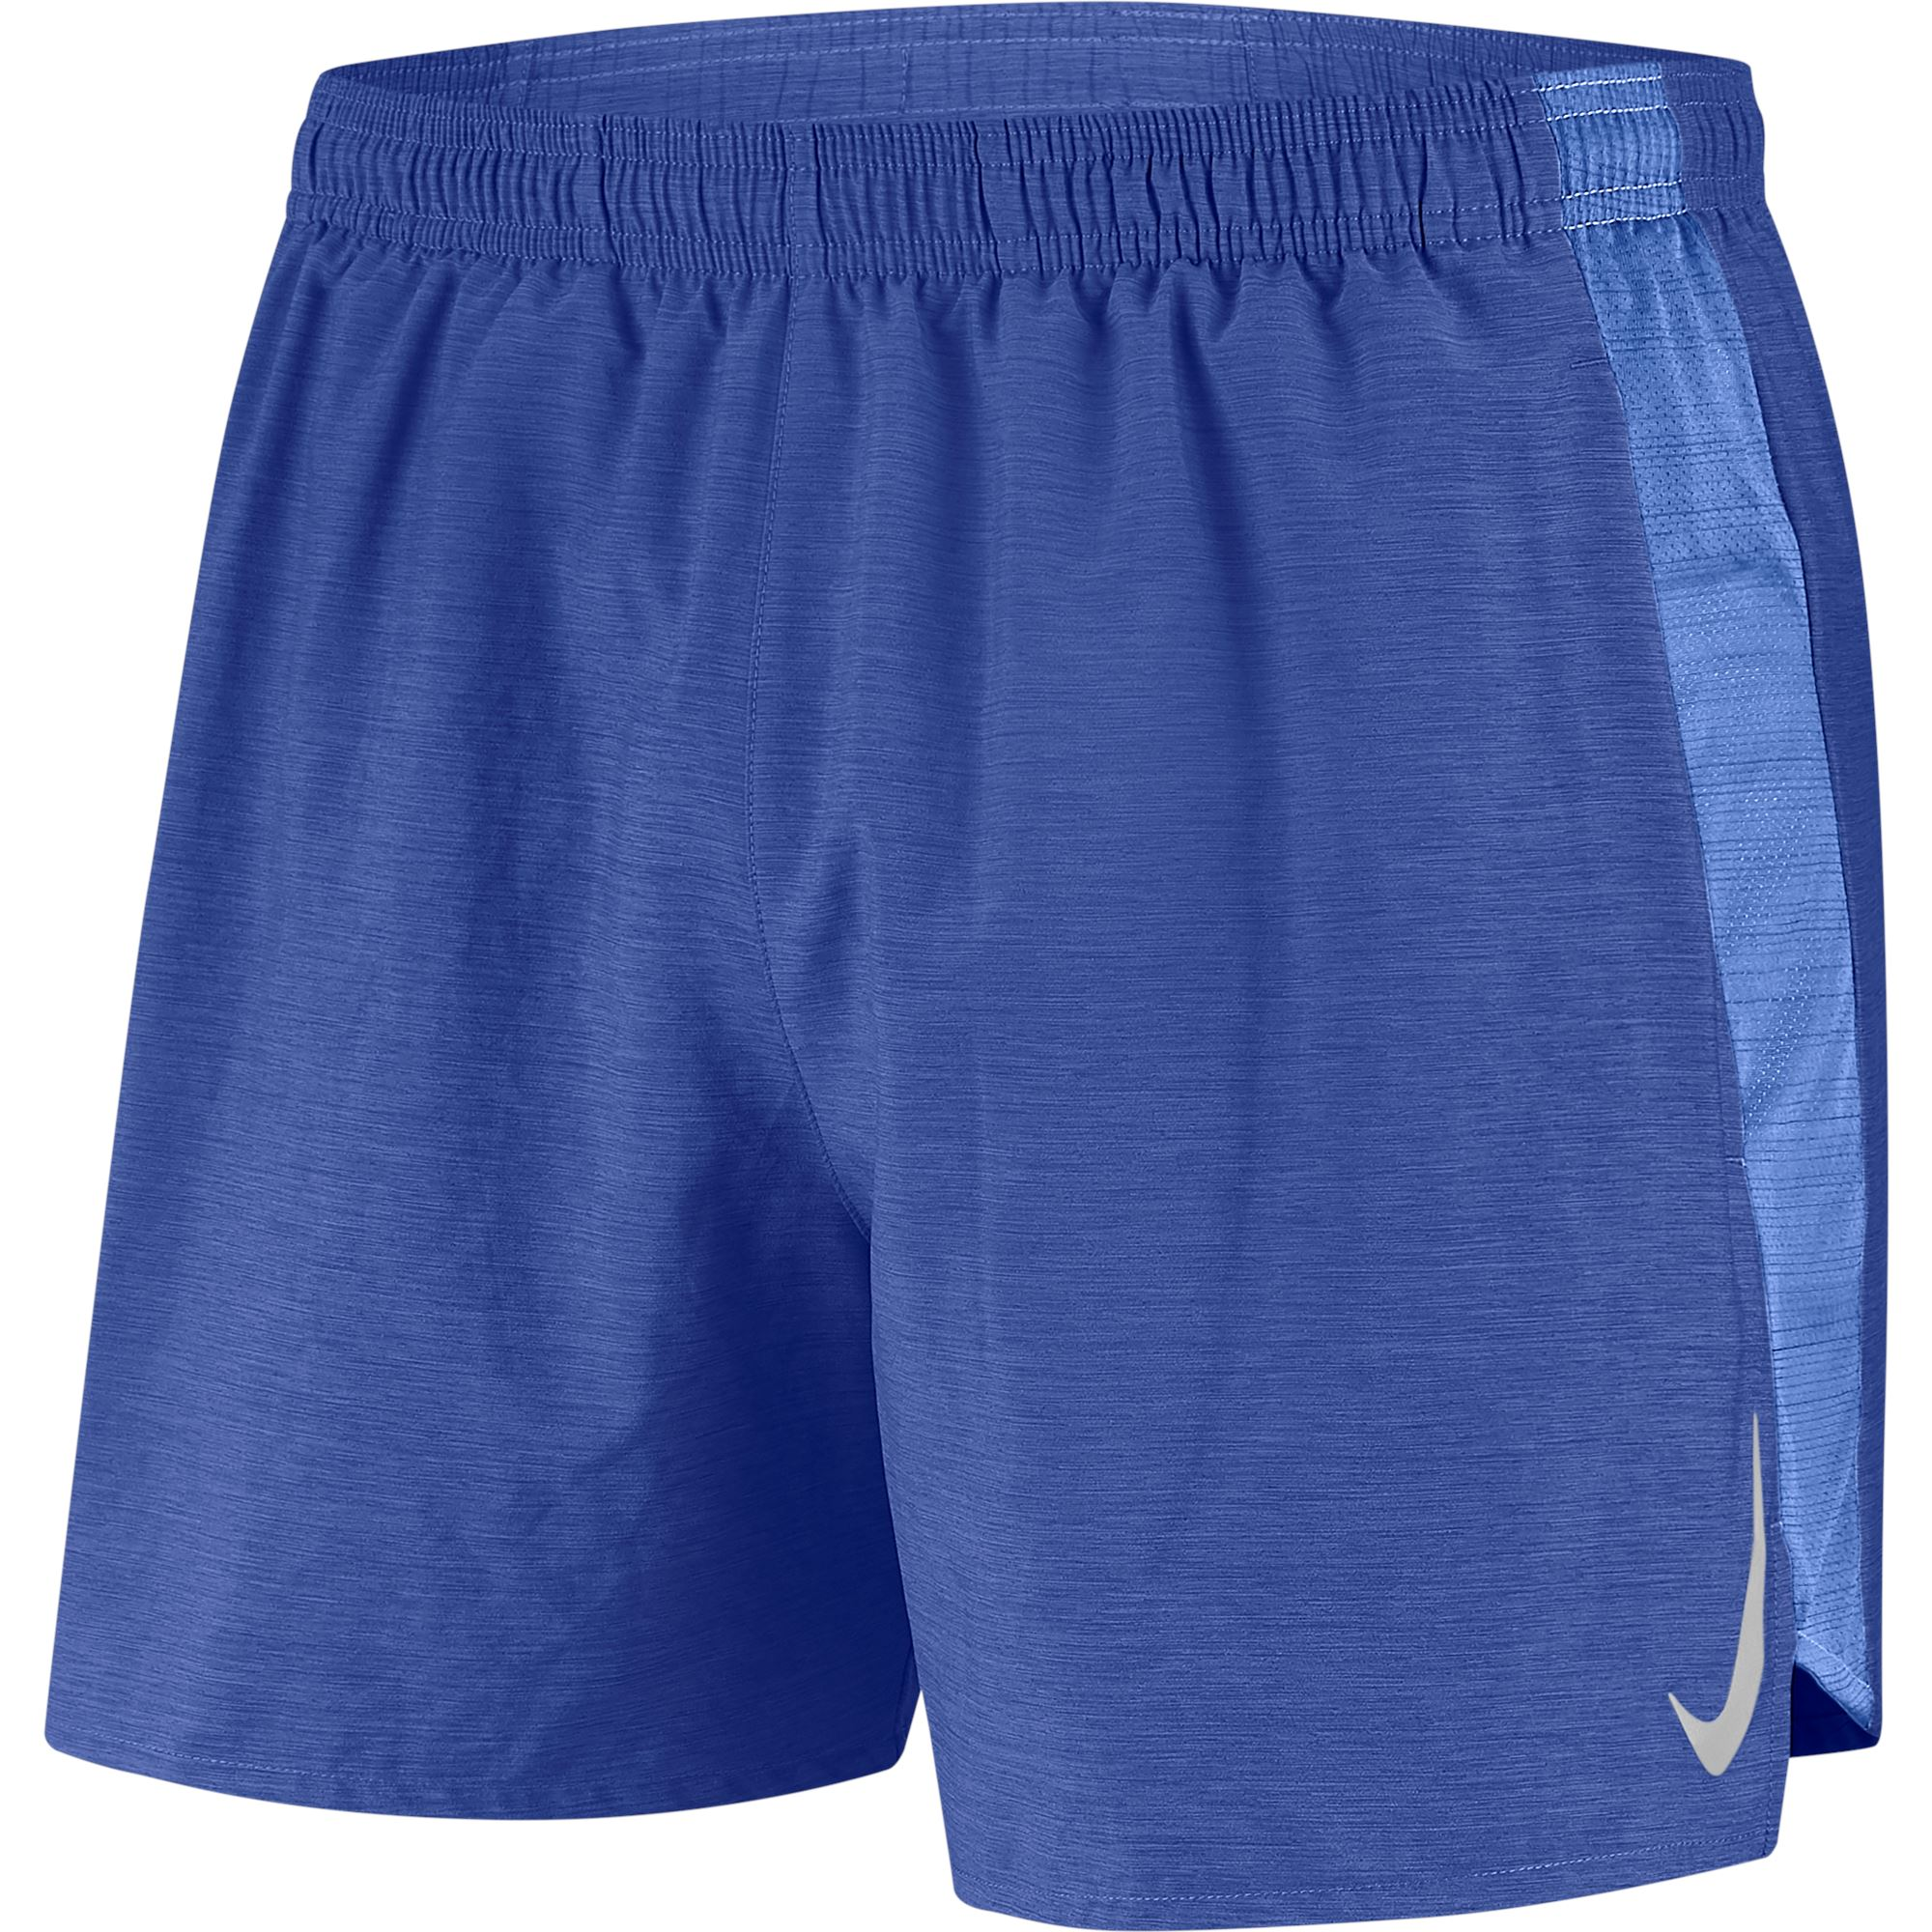 "Nike Mens Challenger 5"" Brief-Lined Running Shorts - Astronomy Blue/Reflective Silv SP-ApparelShorts-Mens Nike"